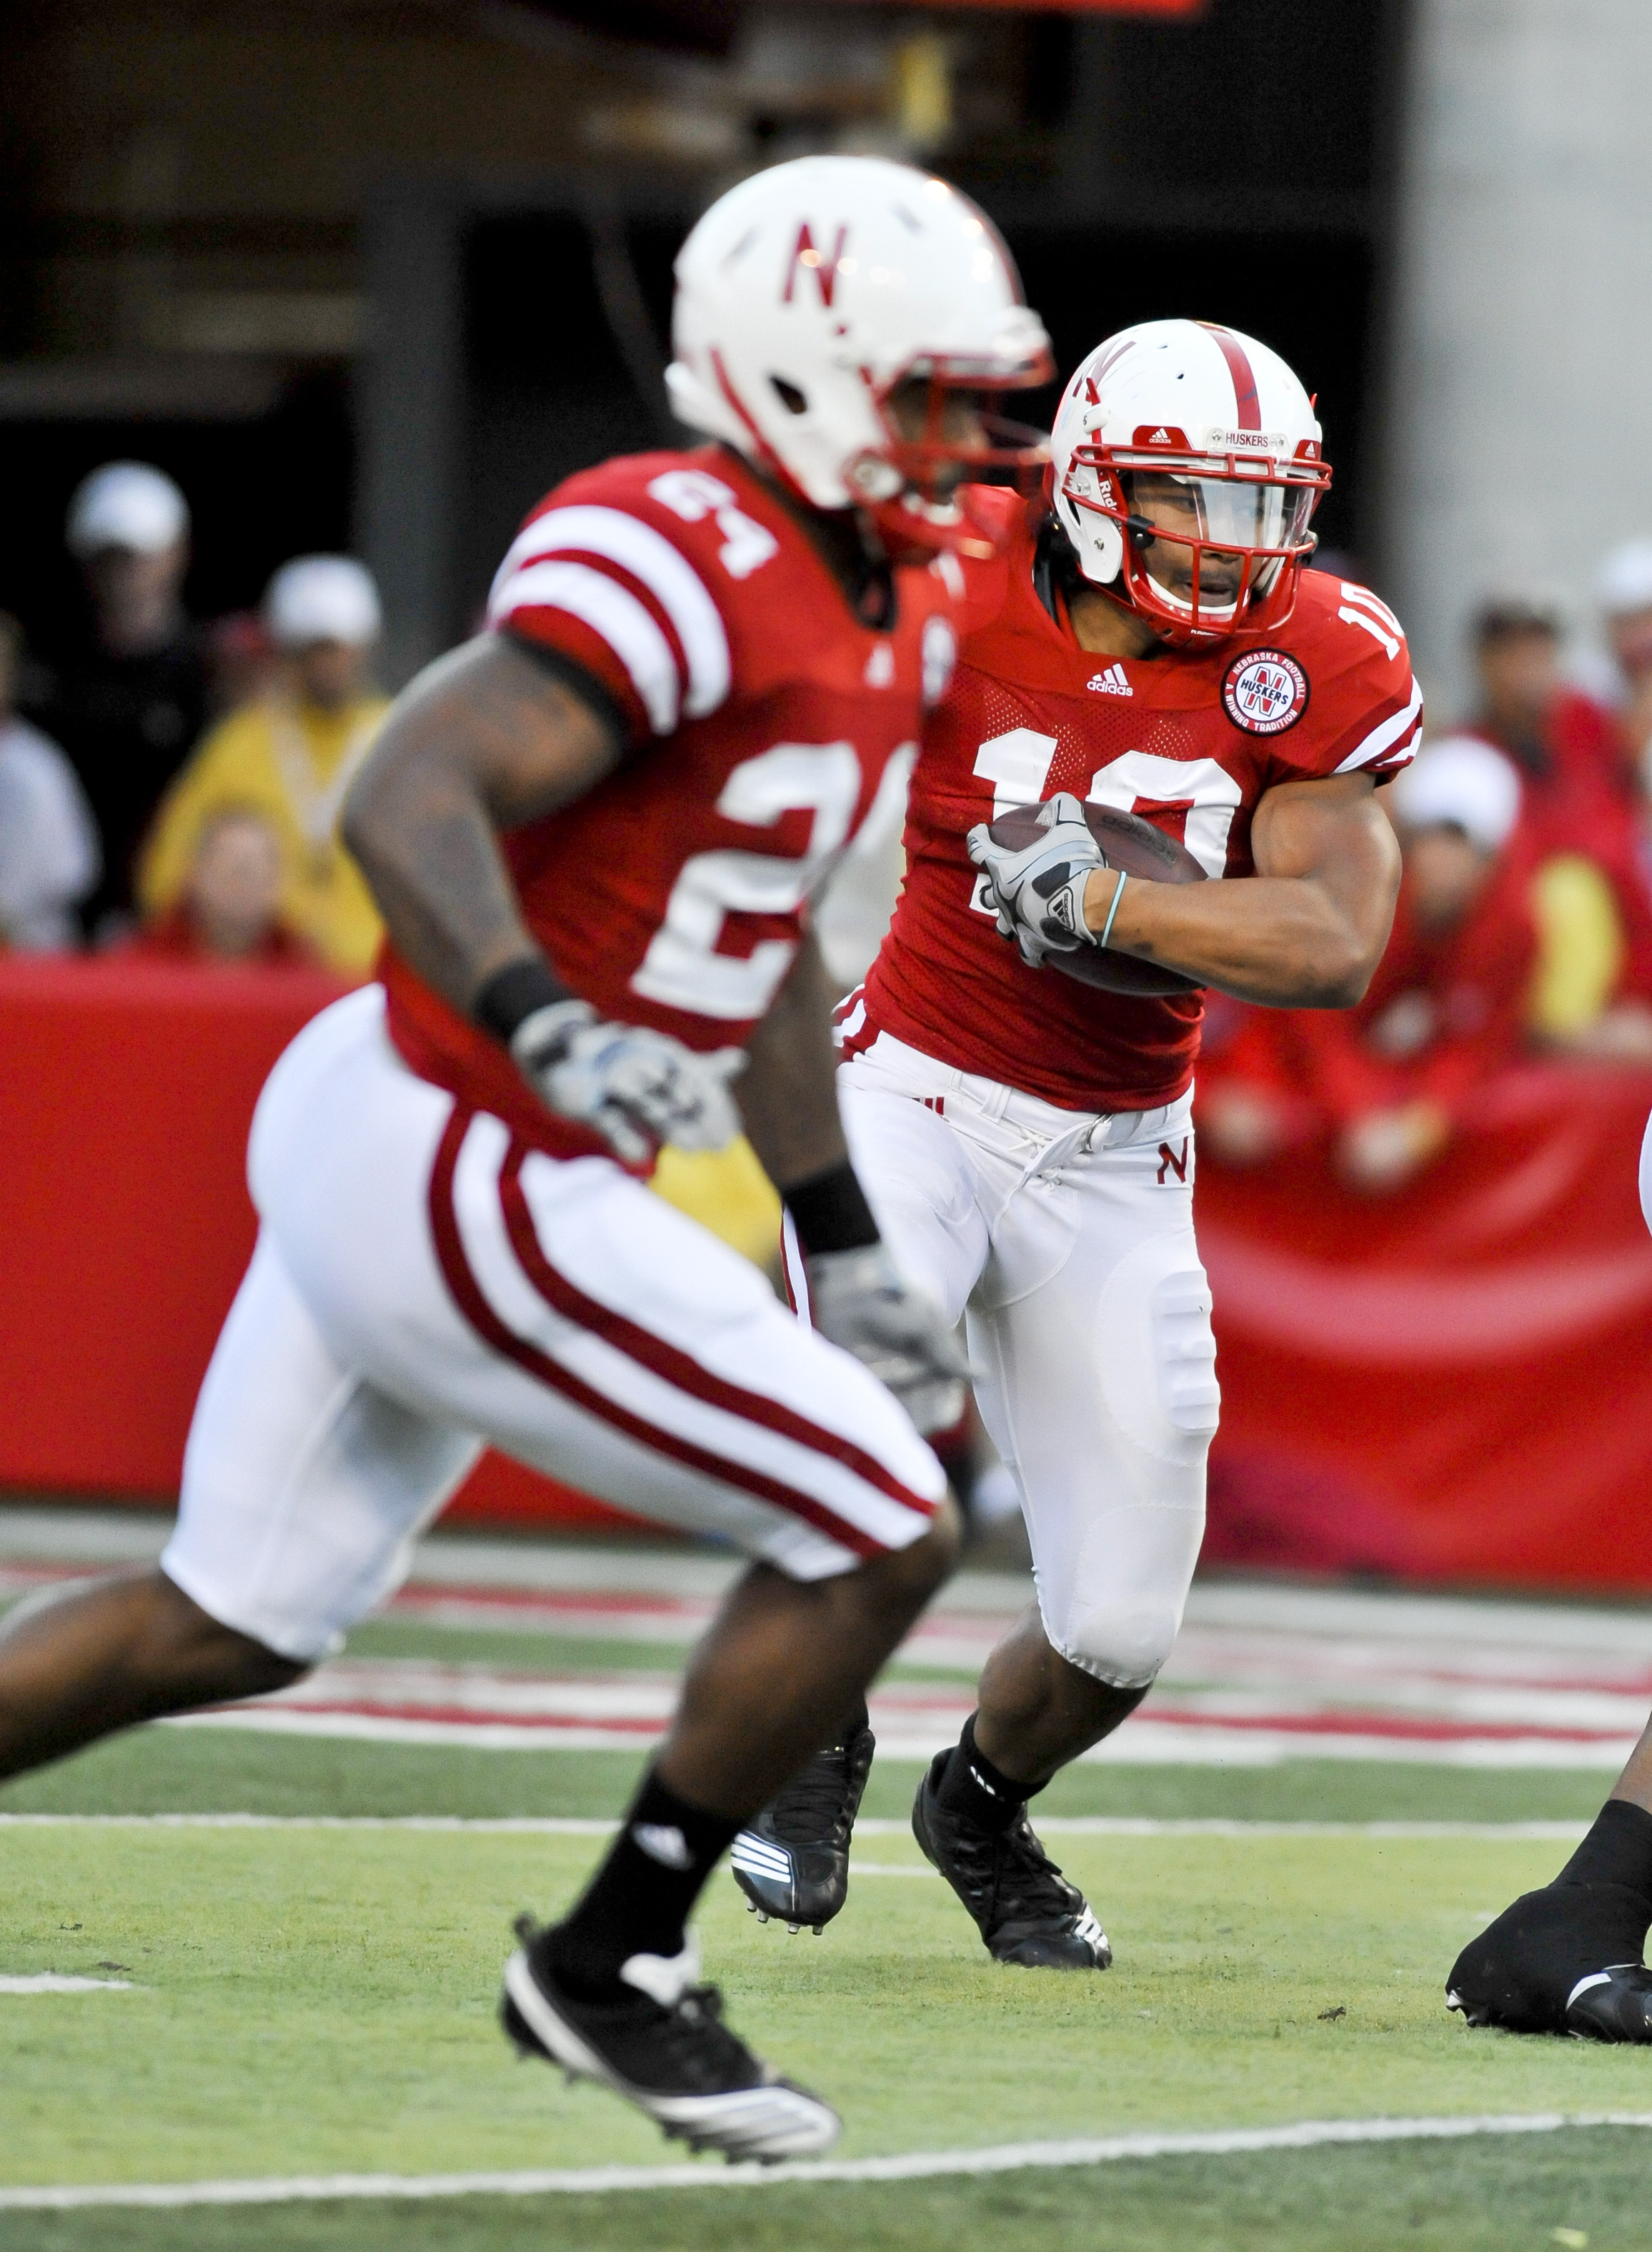 LINCOLN, NEBRASKA - SEPTEMBER 25: Nebraska Cornhuskers running back Roy Helu Jr. #10 follows wide receiver Niles Paul #24 during first half action of their game against the South Dakota State Jackrabbits at Memorial Stadium on September 25, 2010 in Lincol